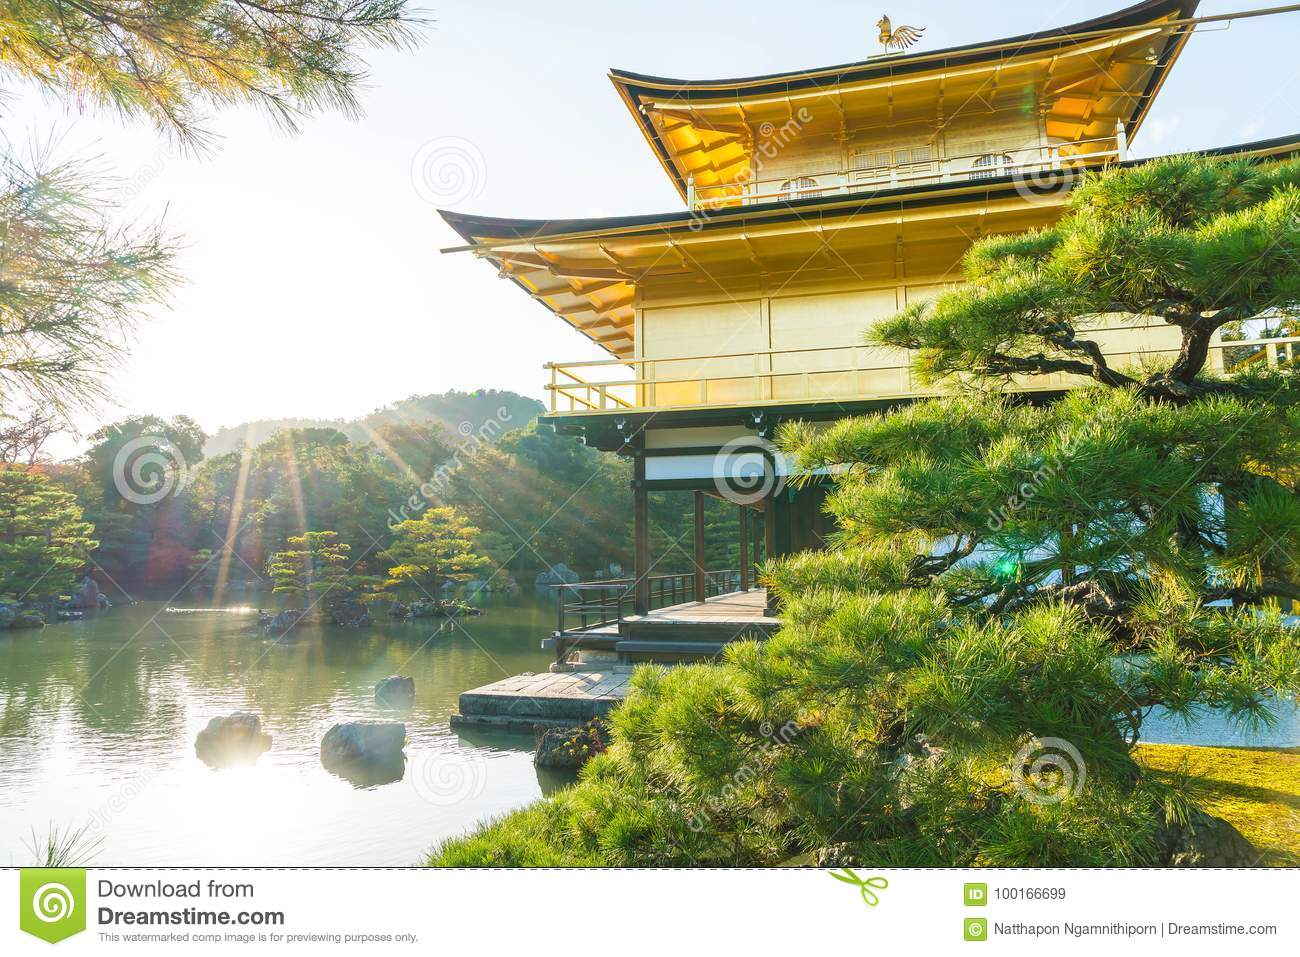 Beautiful Architecture at Kinkakuji Temple (The Golden Pavilion)